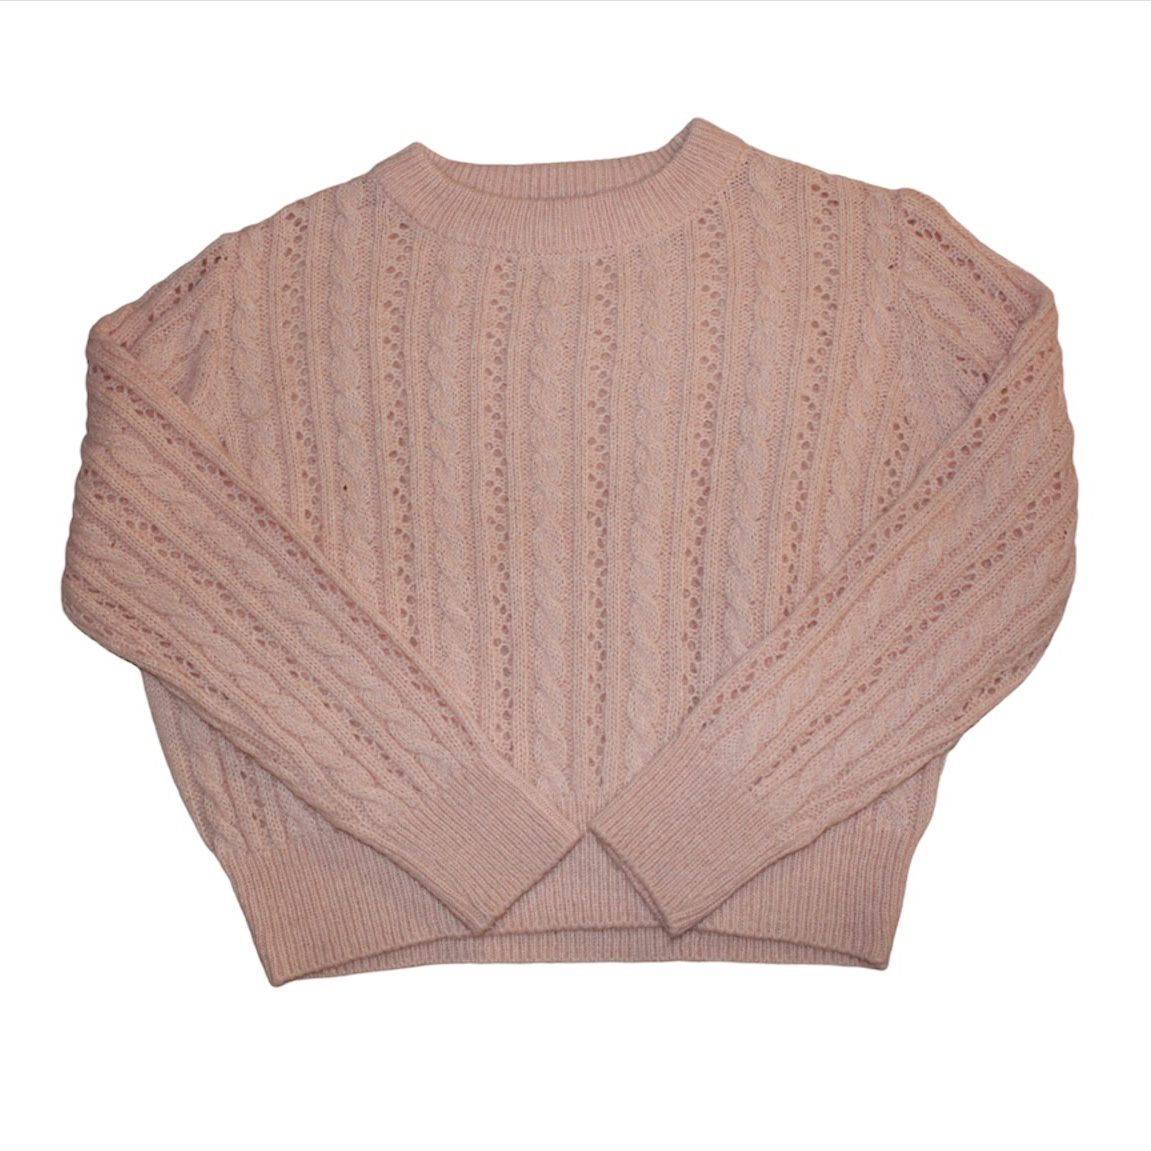 Product Image 1 - Olive Clothing Contemporary Pastel Pink